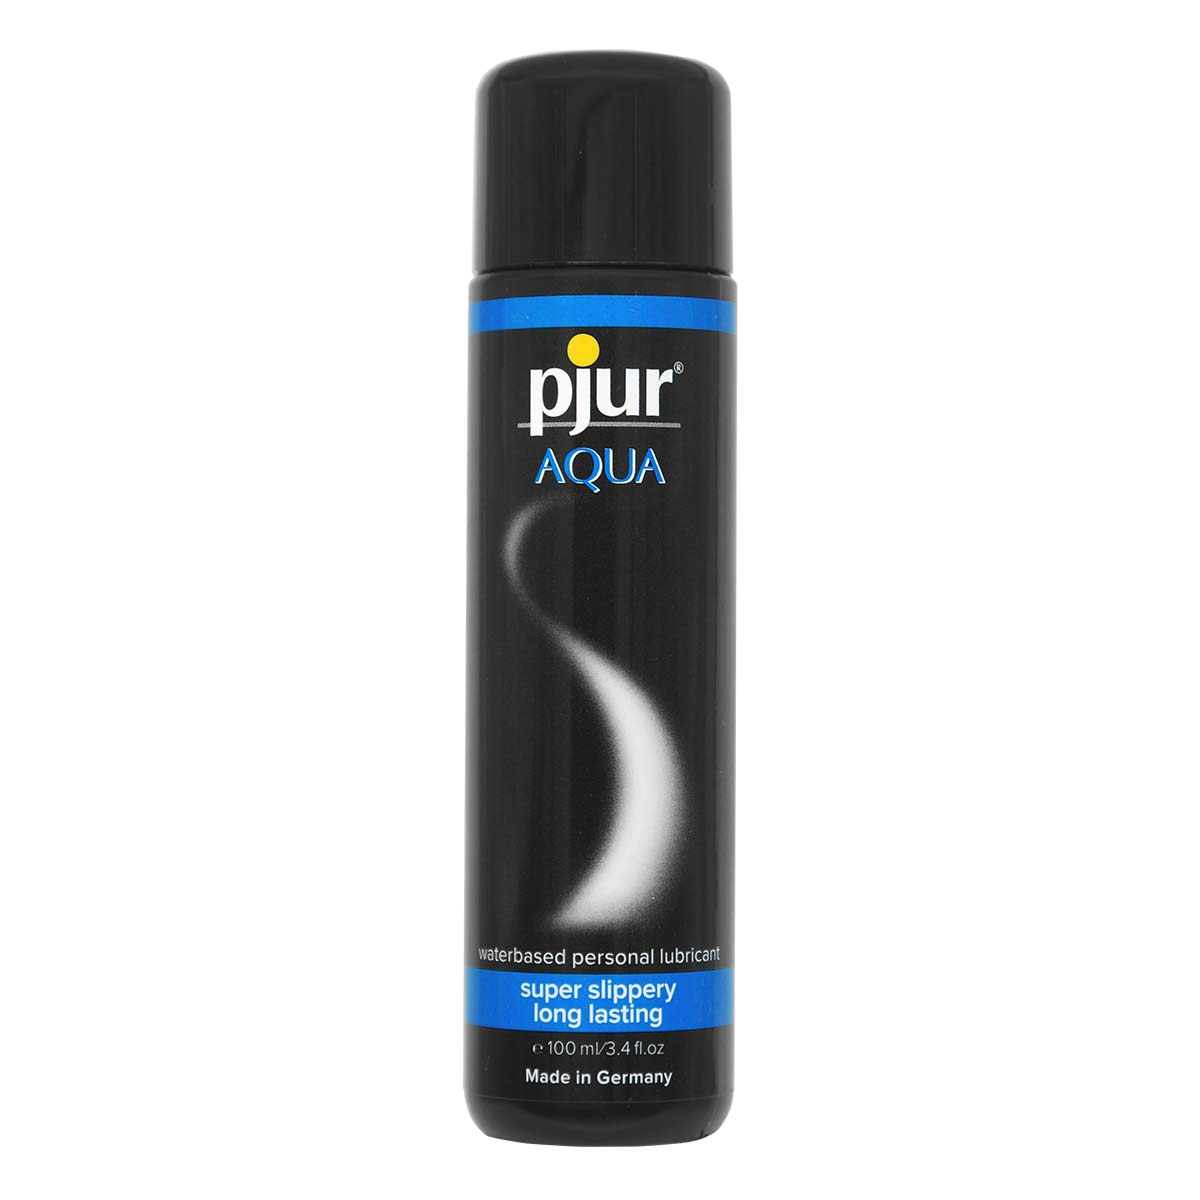 pjur AQUA 100ml Water-based Lubricant